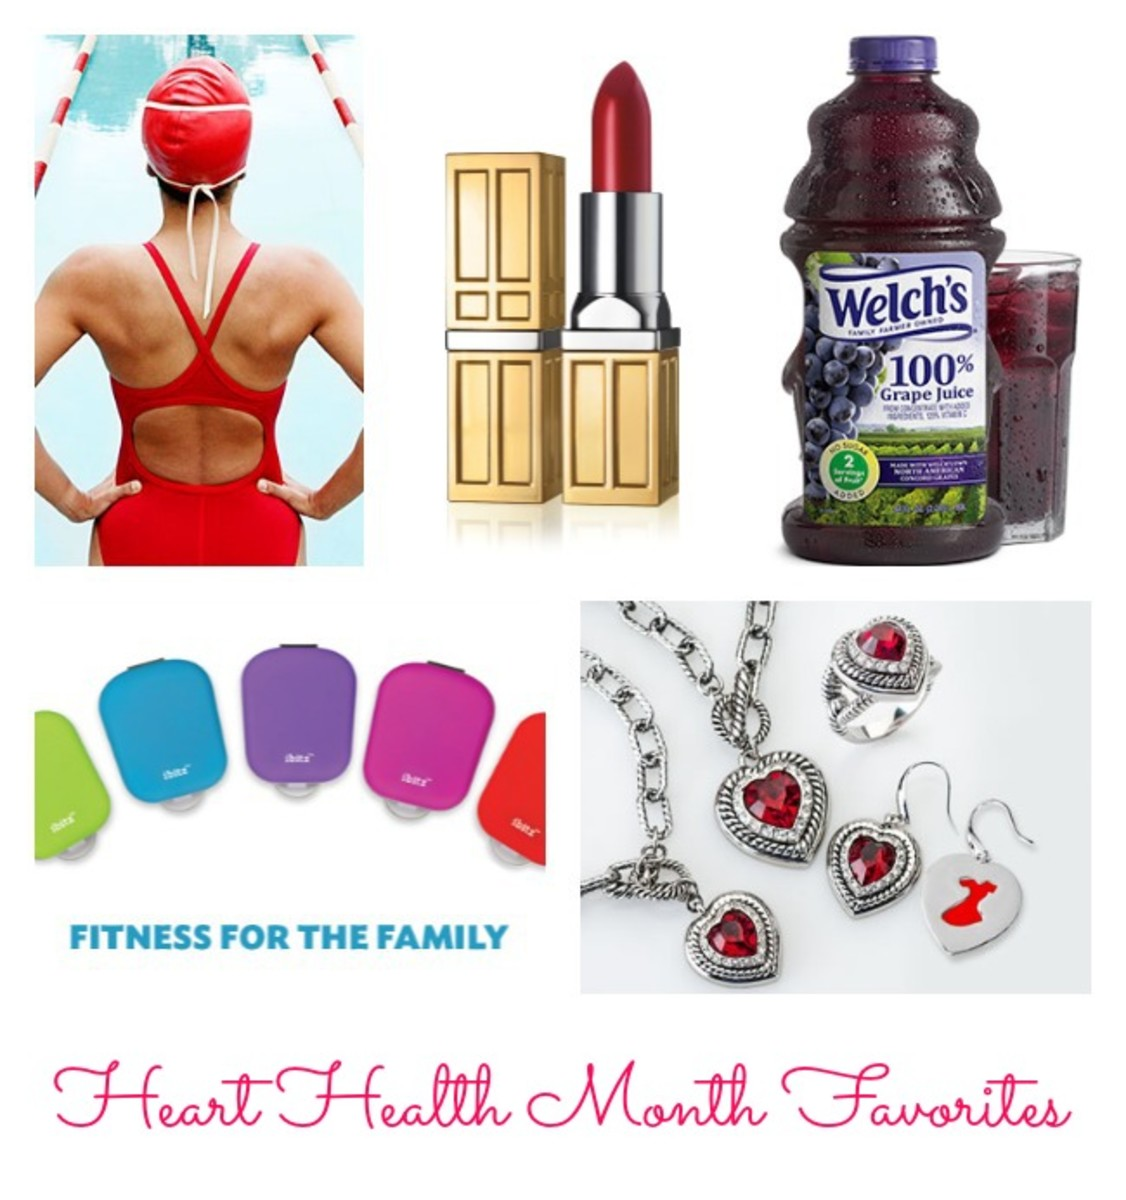 Heart Health Month Favorites